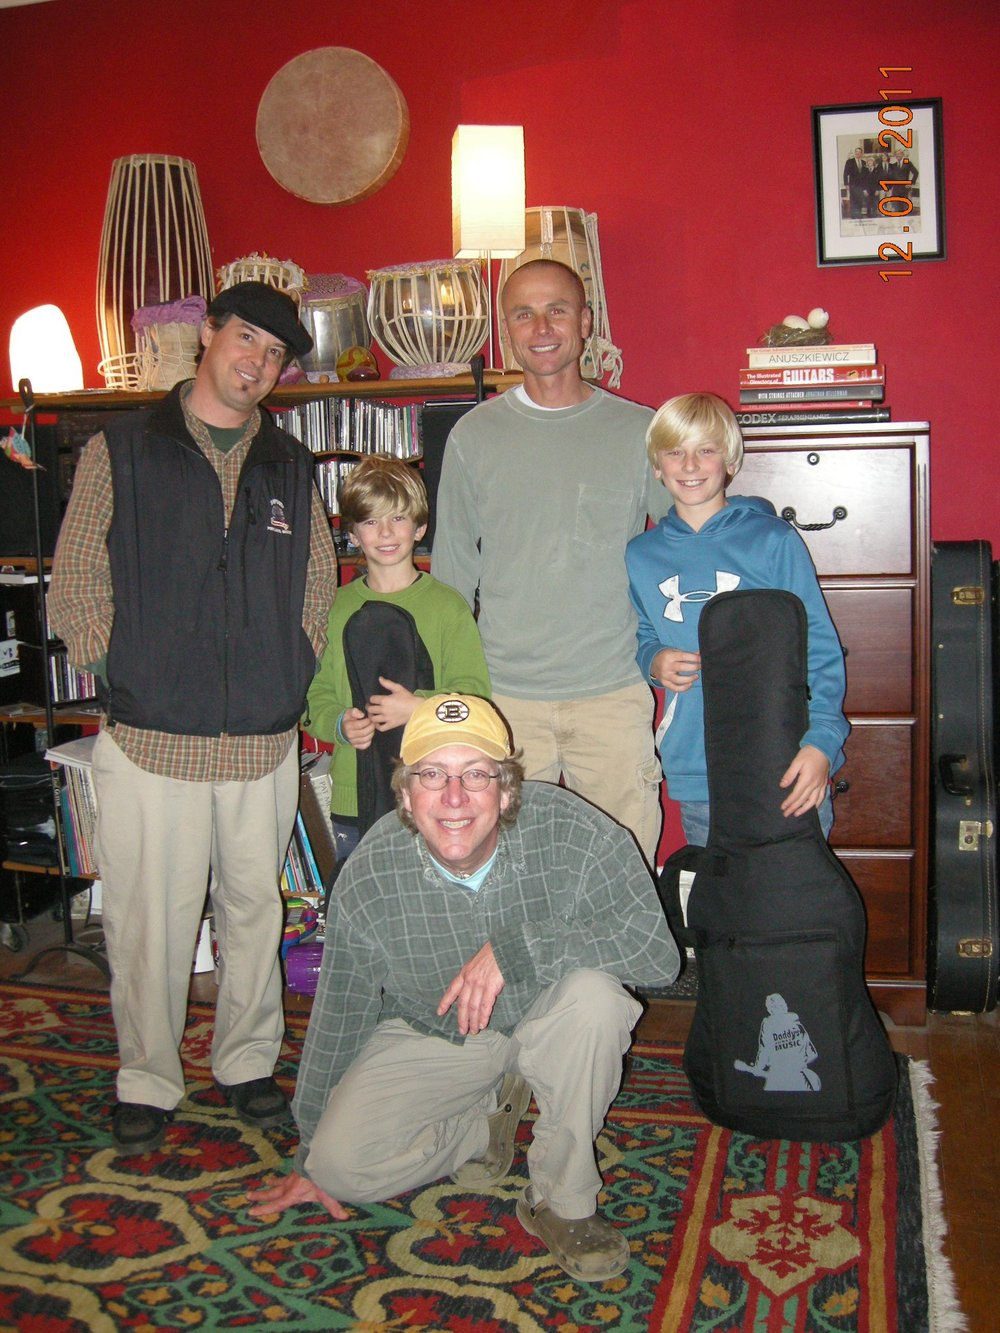 Felix (left) in the music studio with two young students and their dads.